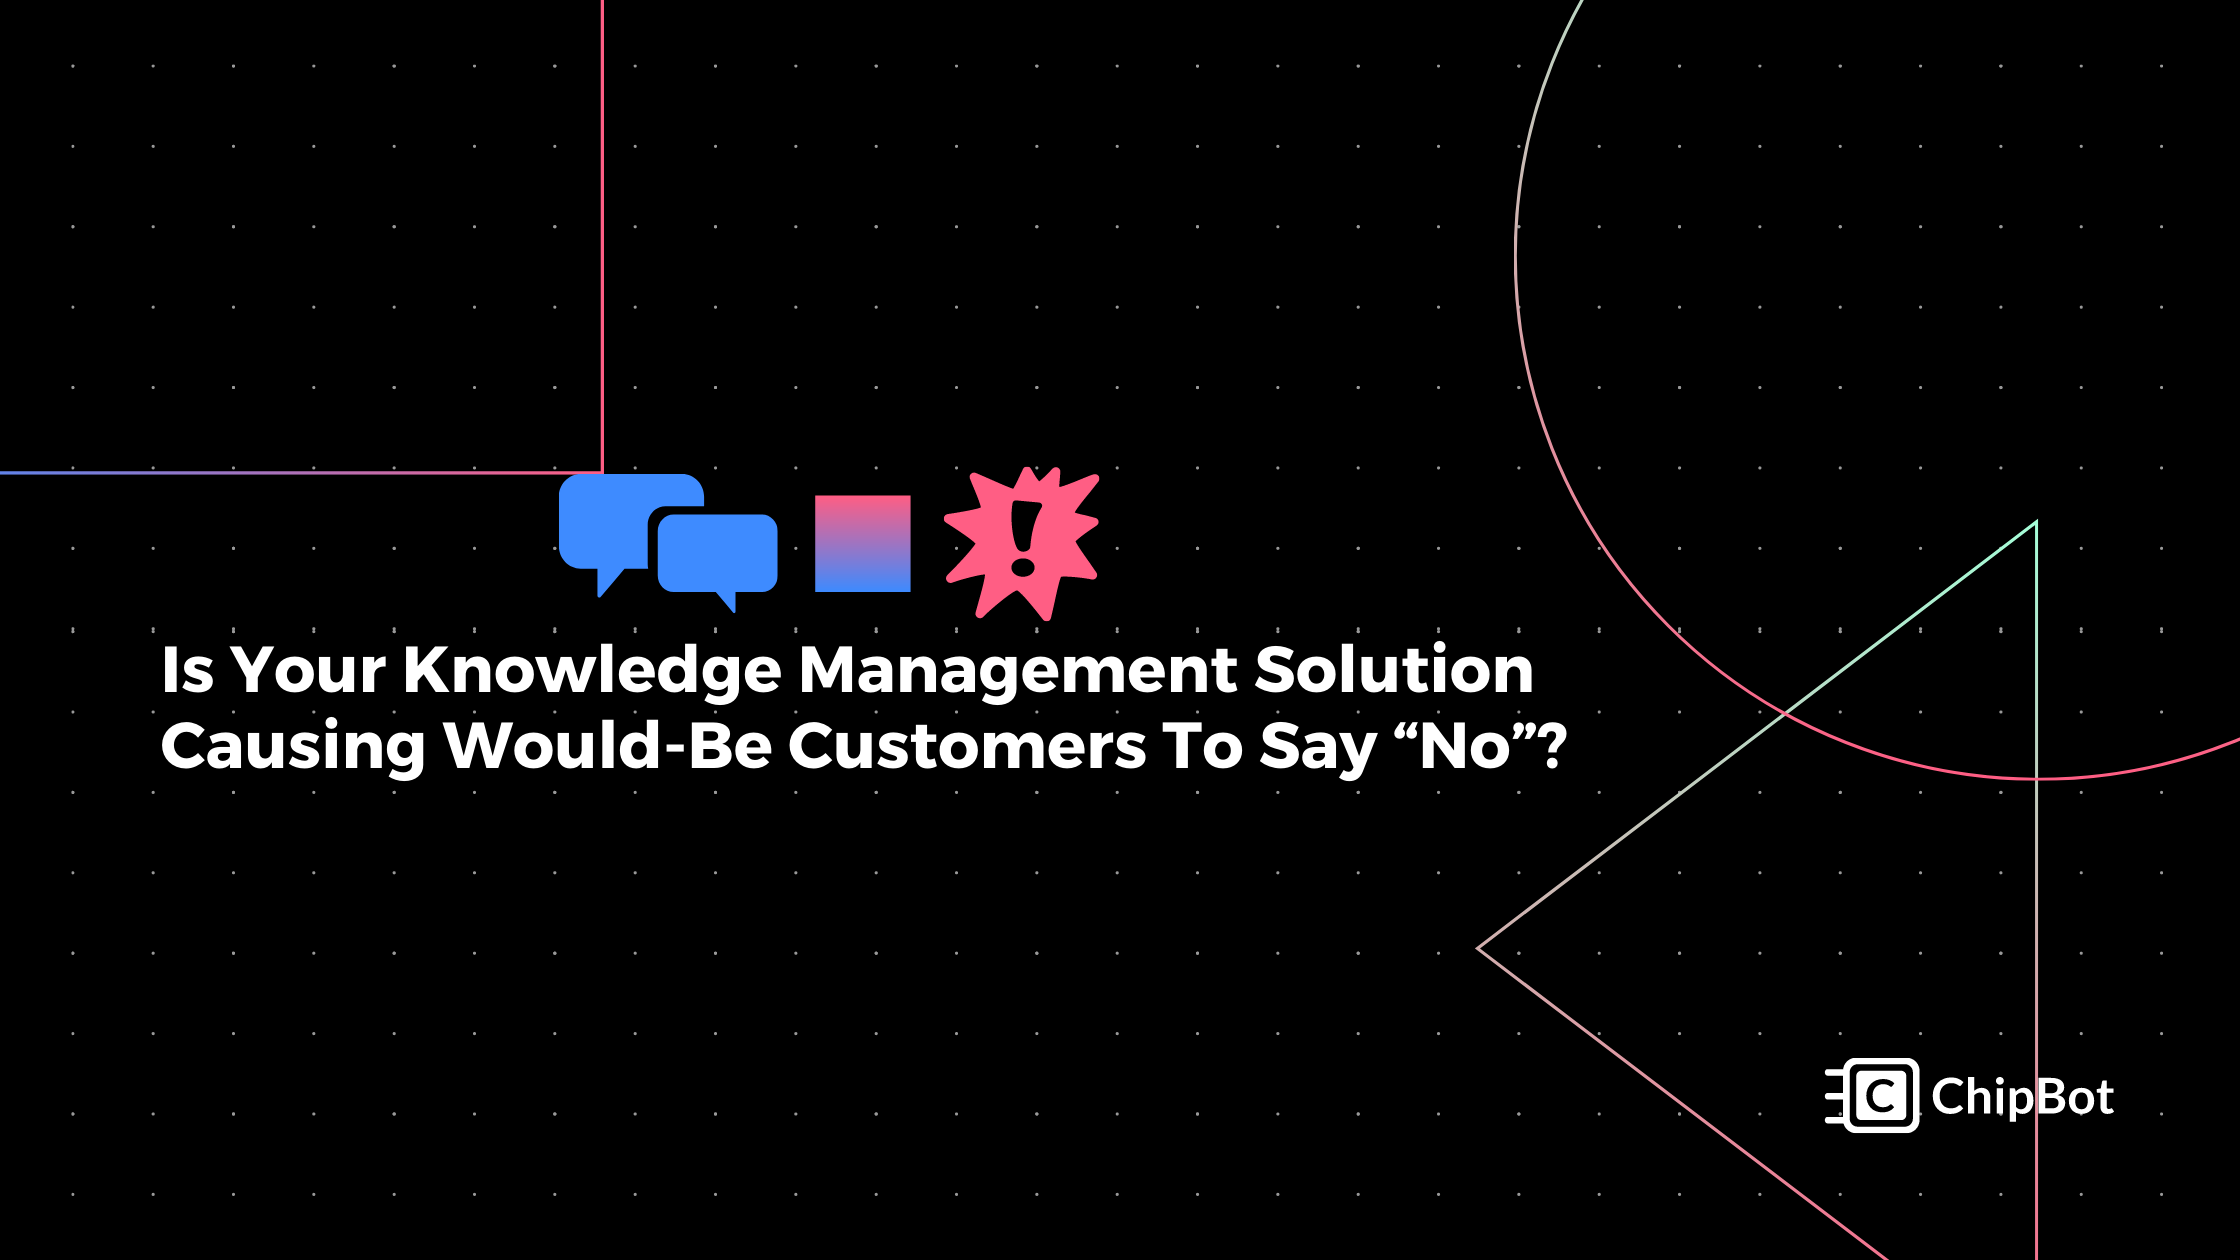 "Is Your Knowledge Management Solution Causing Would-Be Customers To Say ""No""?"